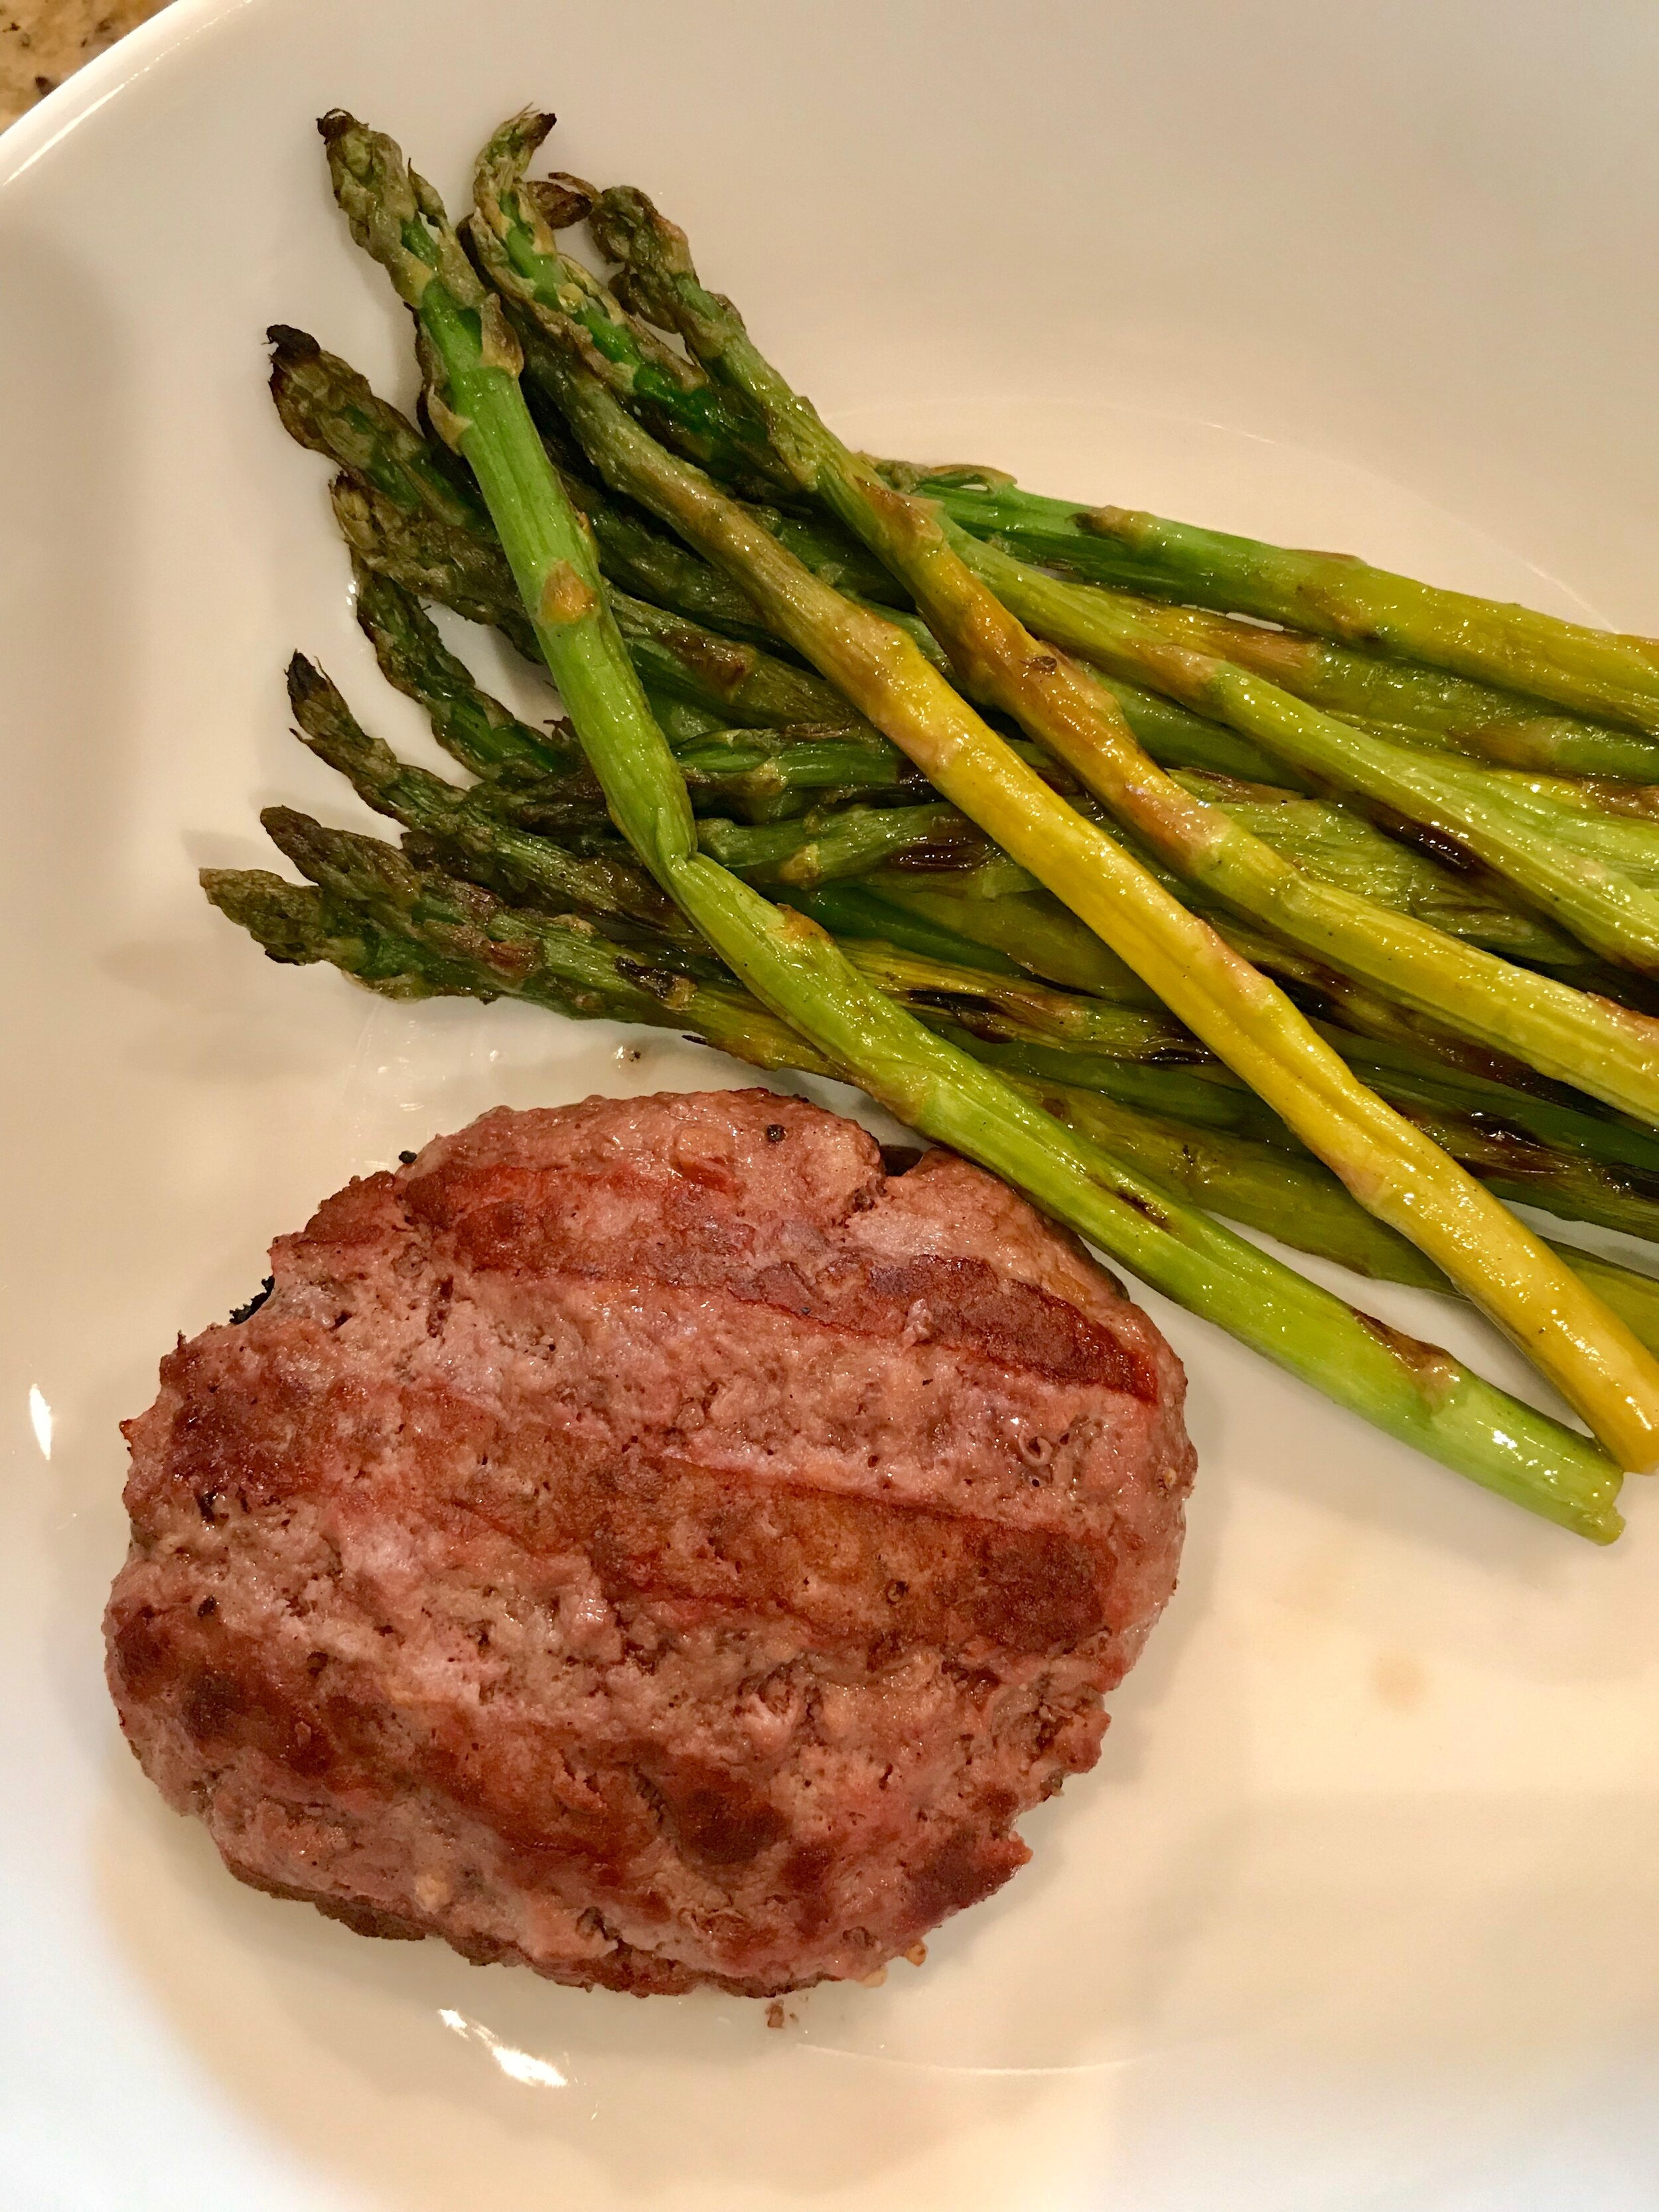 Broke my Fast - Grass-fed beef burger with asparagus. I added some Cava hummus as a healthy fat.